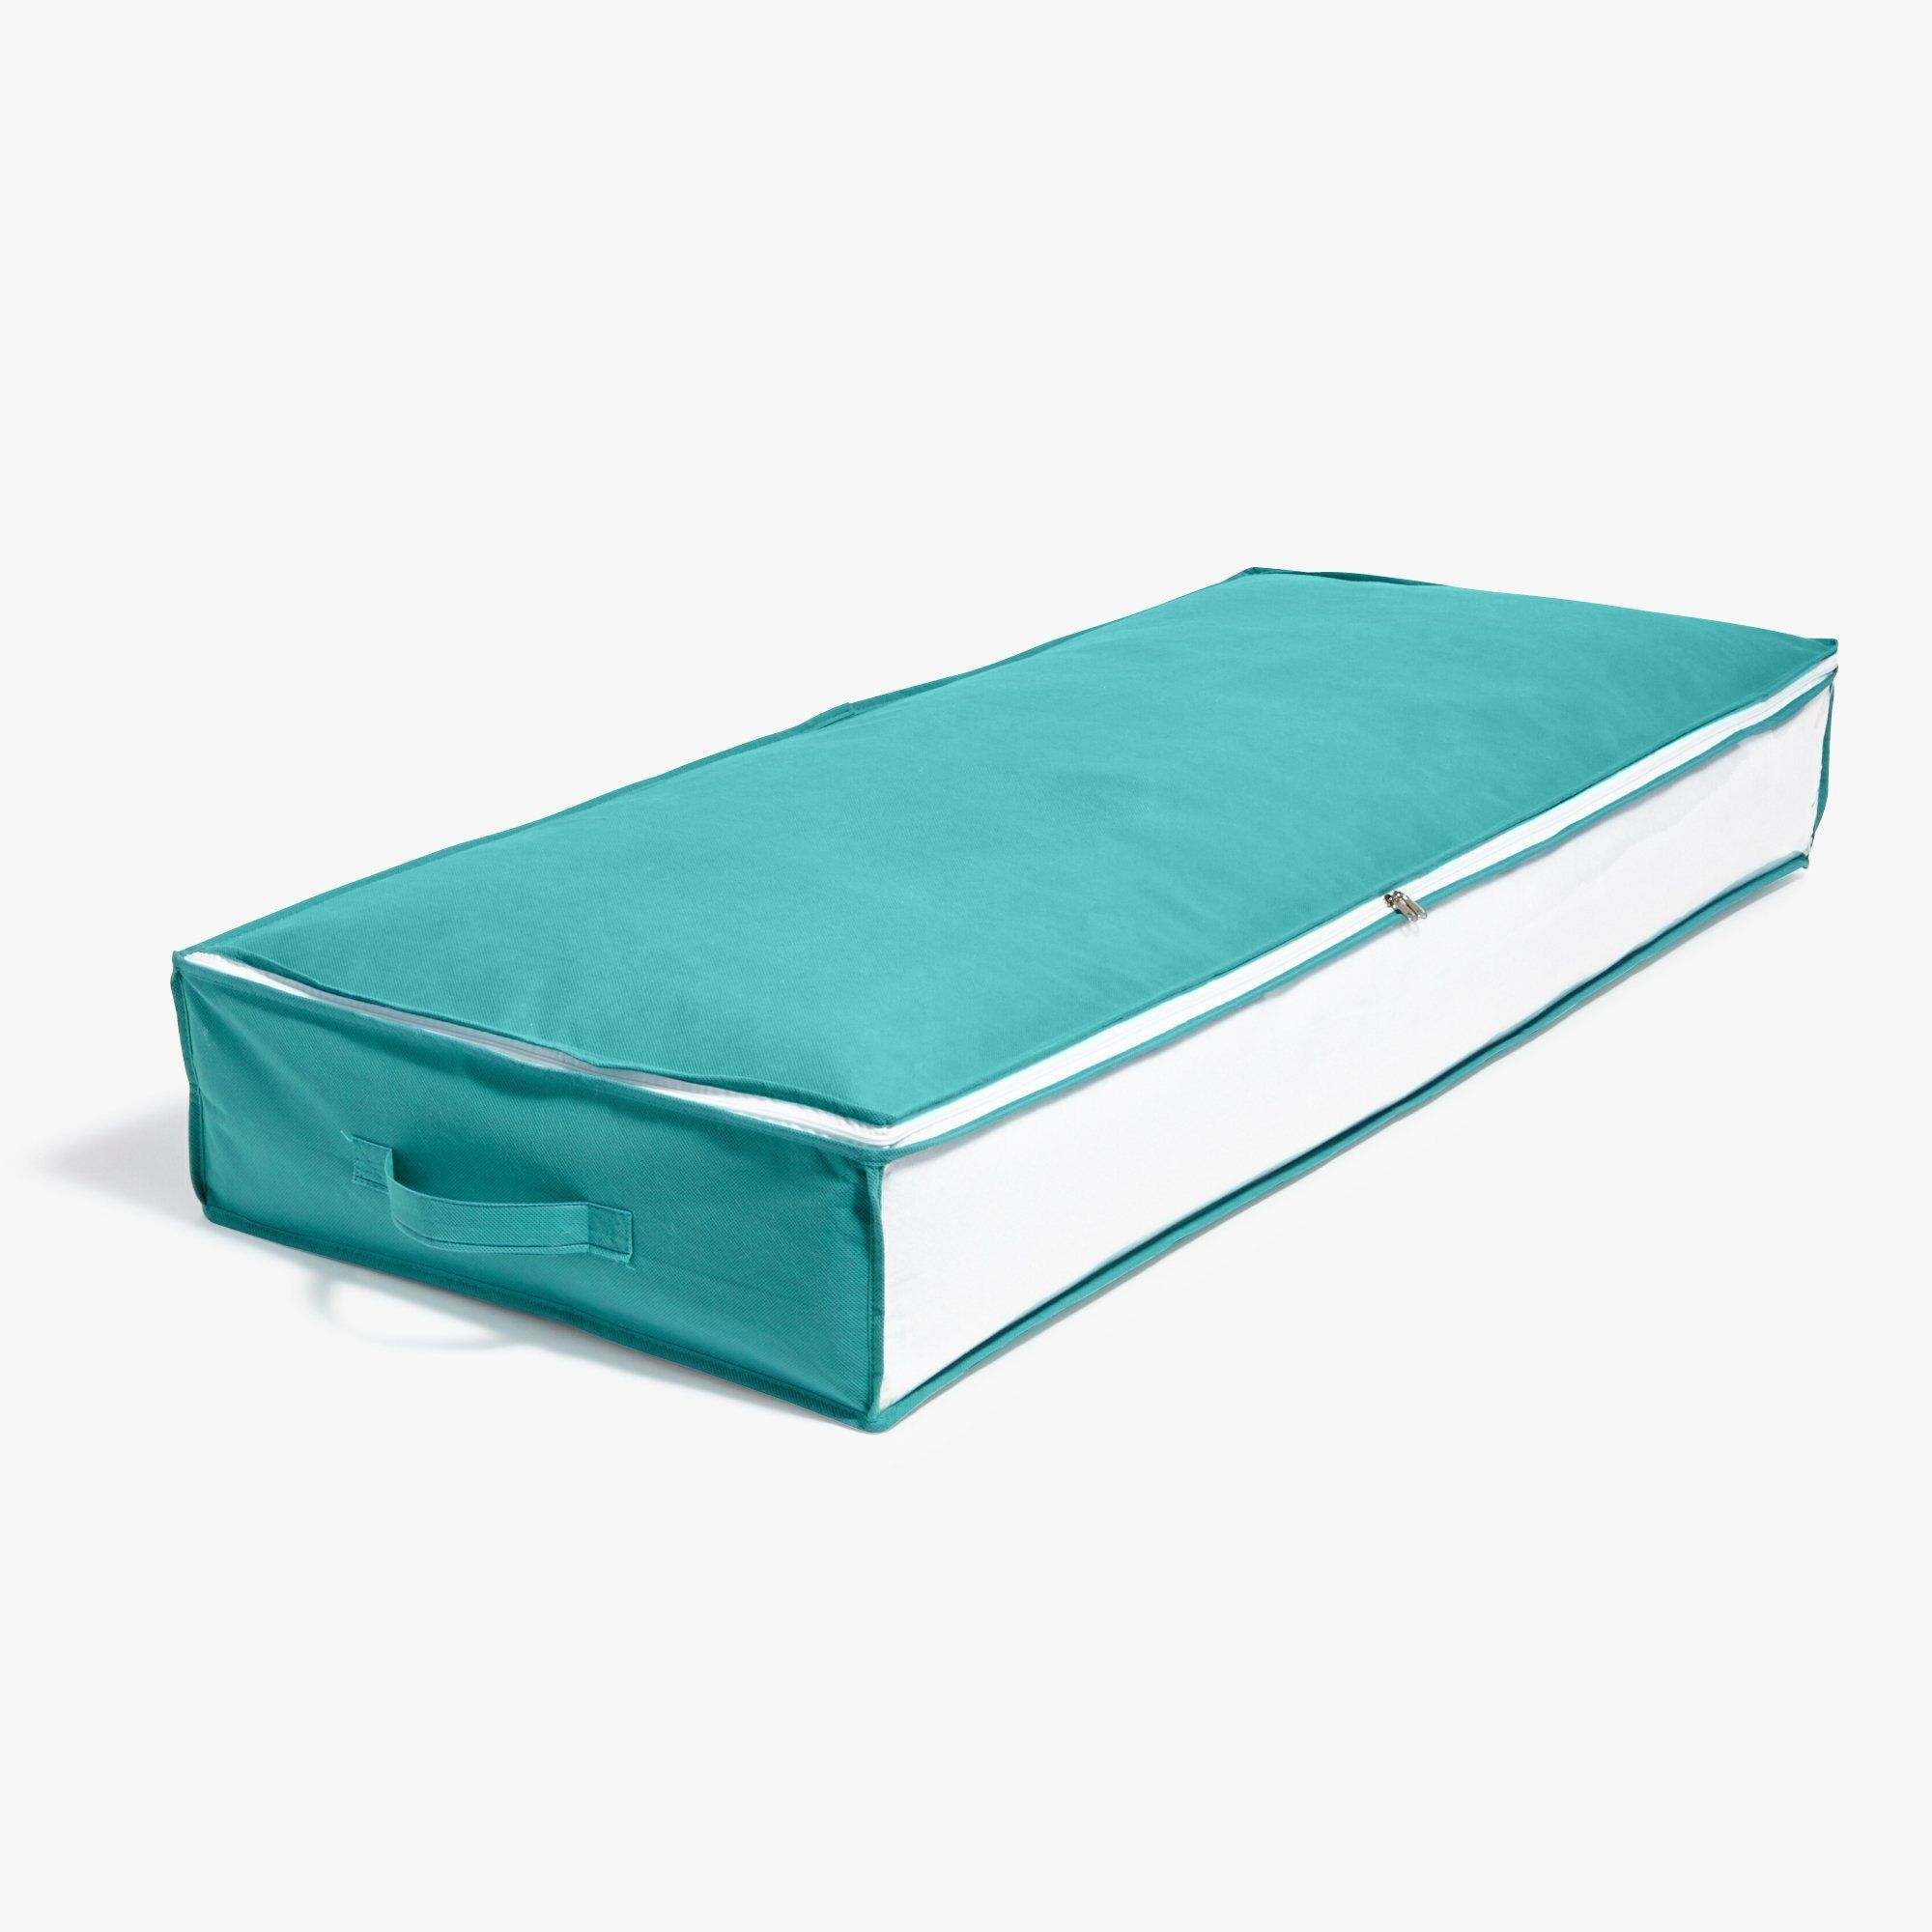 Underbed Storage (3 pack)